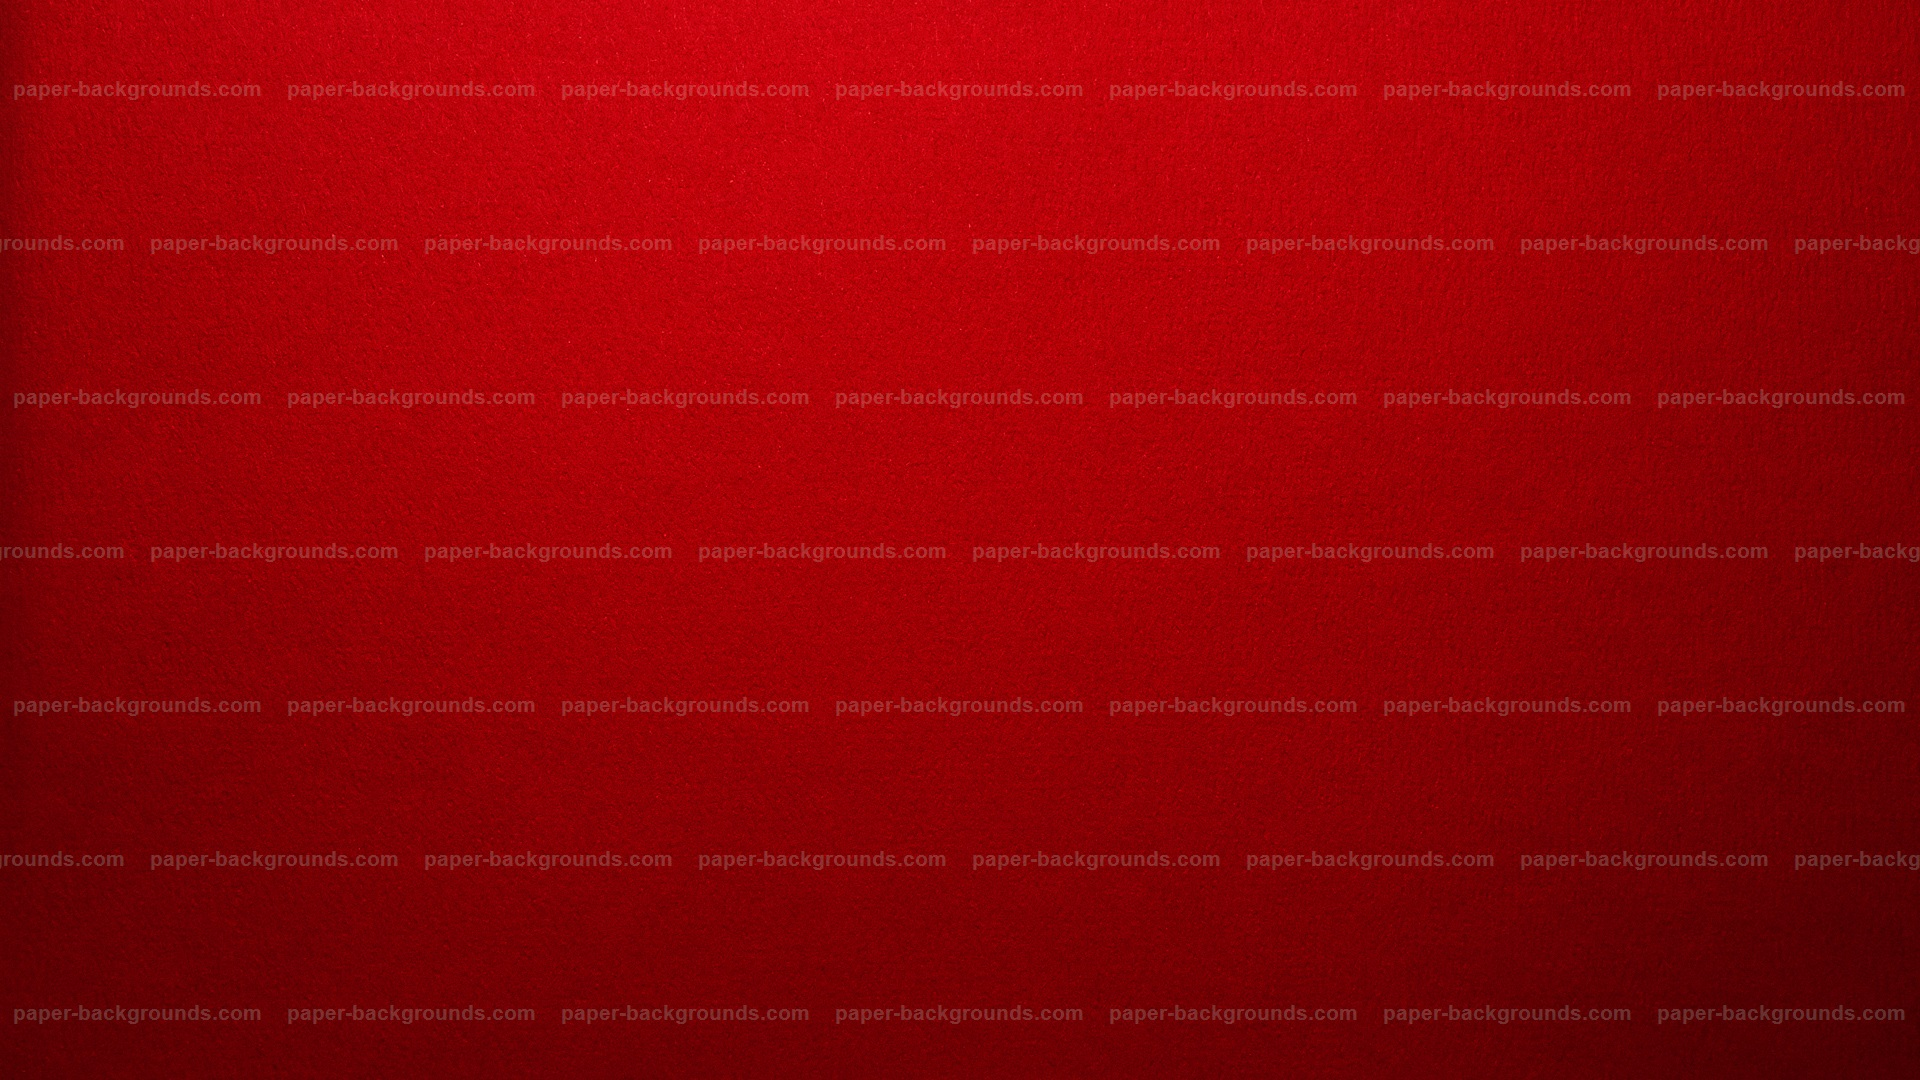 red textured backgrounds - photo #41